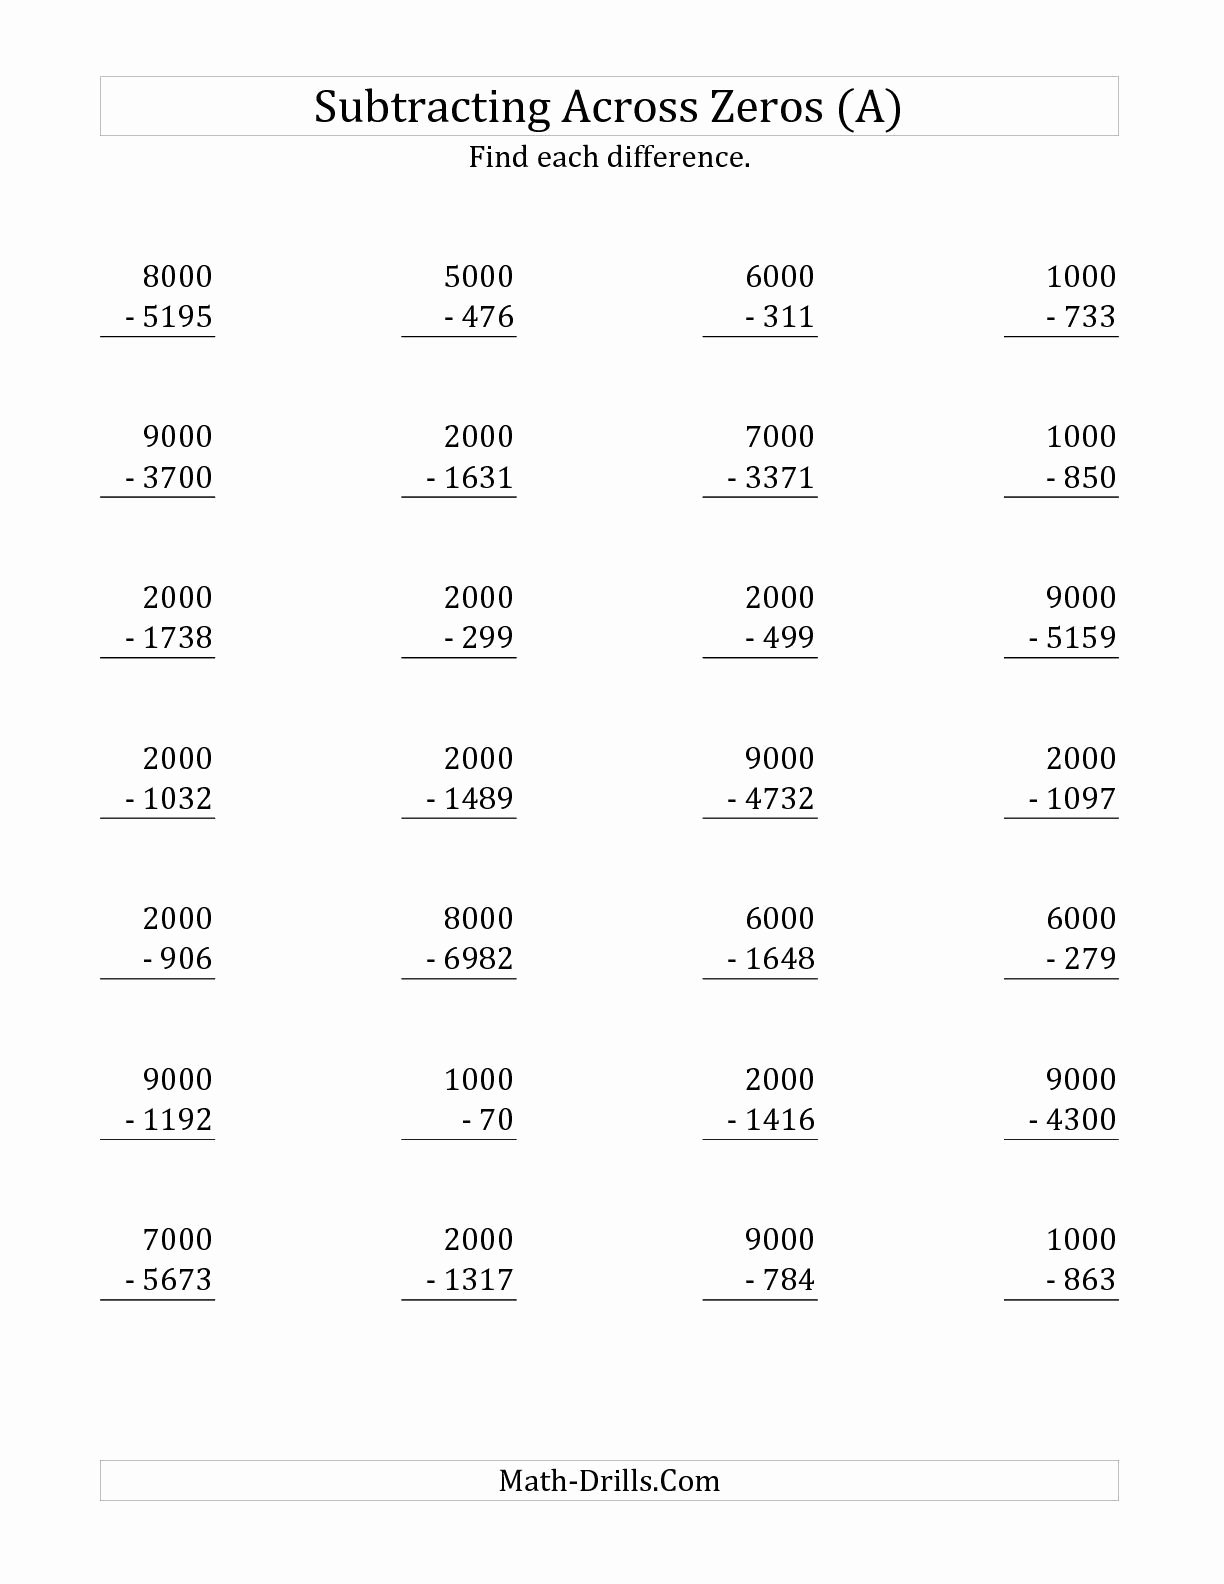 Subtraction Across Zeros Worksheet Lovely the Subtracting Across Zeros From Multiples Of 1000 A